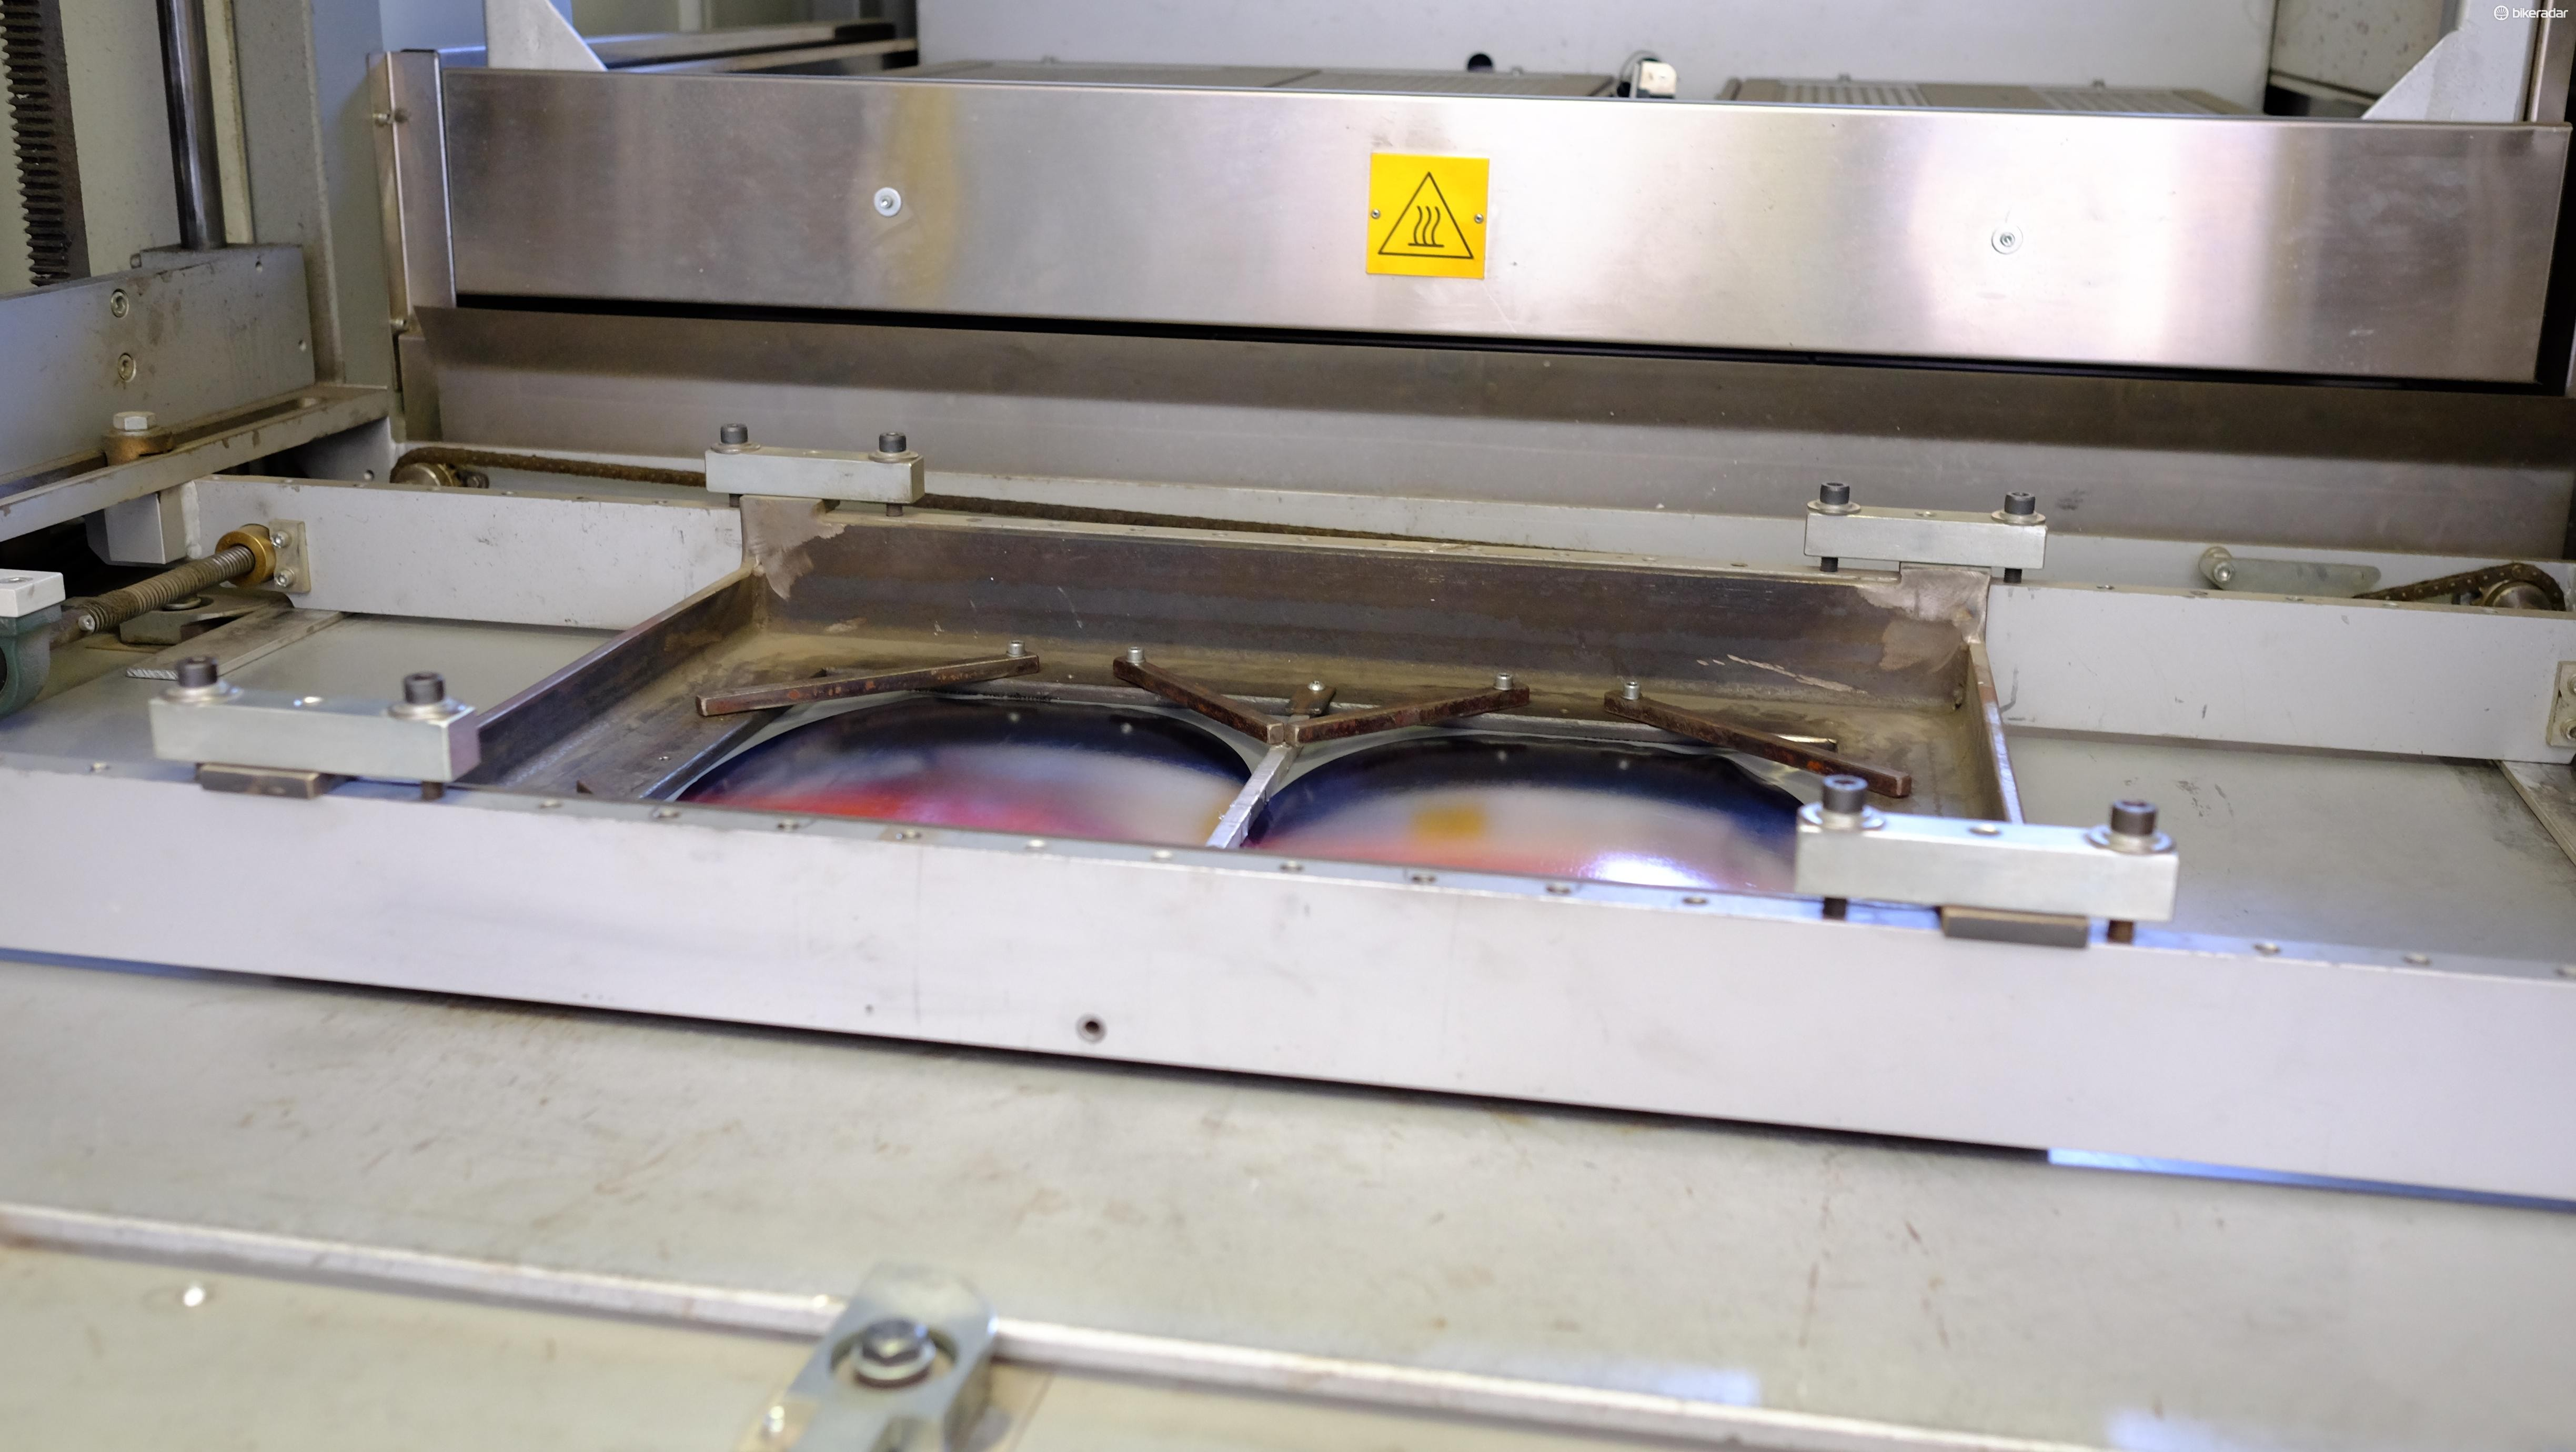 The sheets are loaded in place at the vacuum forming machine, beneath them are two helmet-shaped moulds